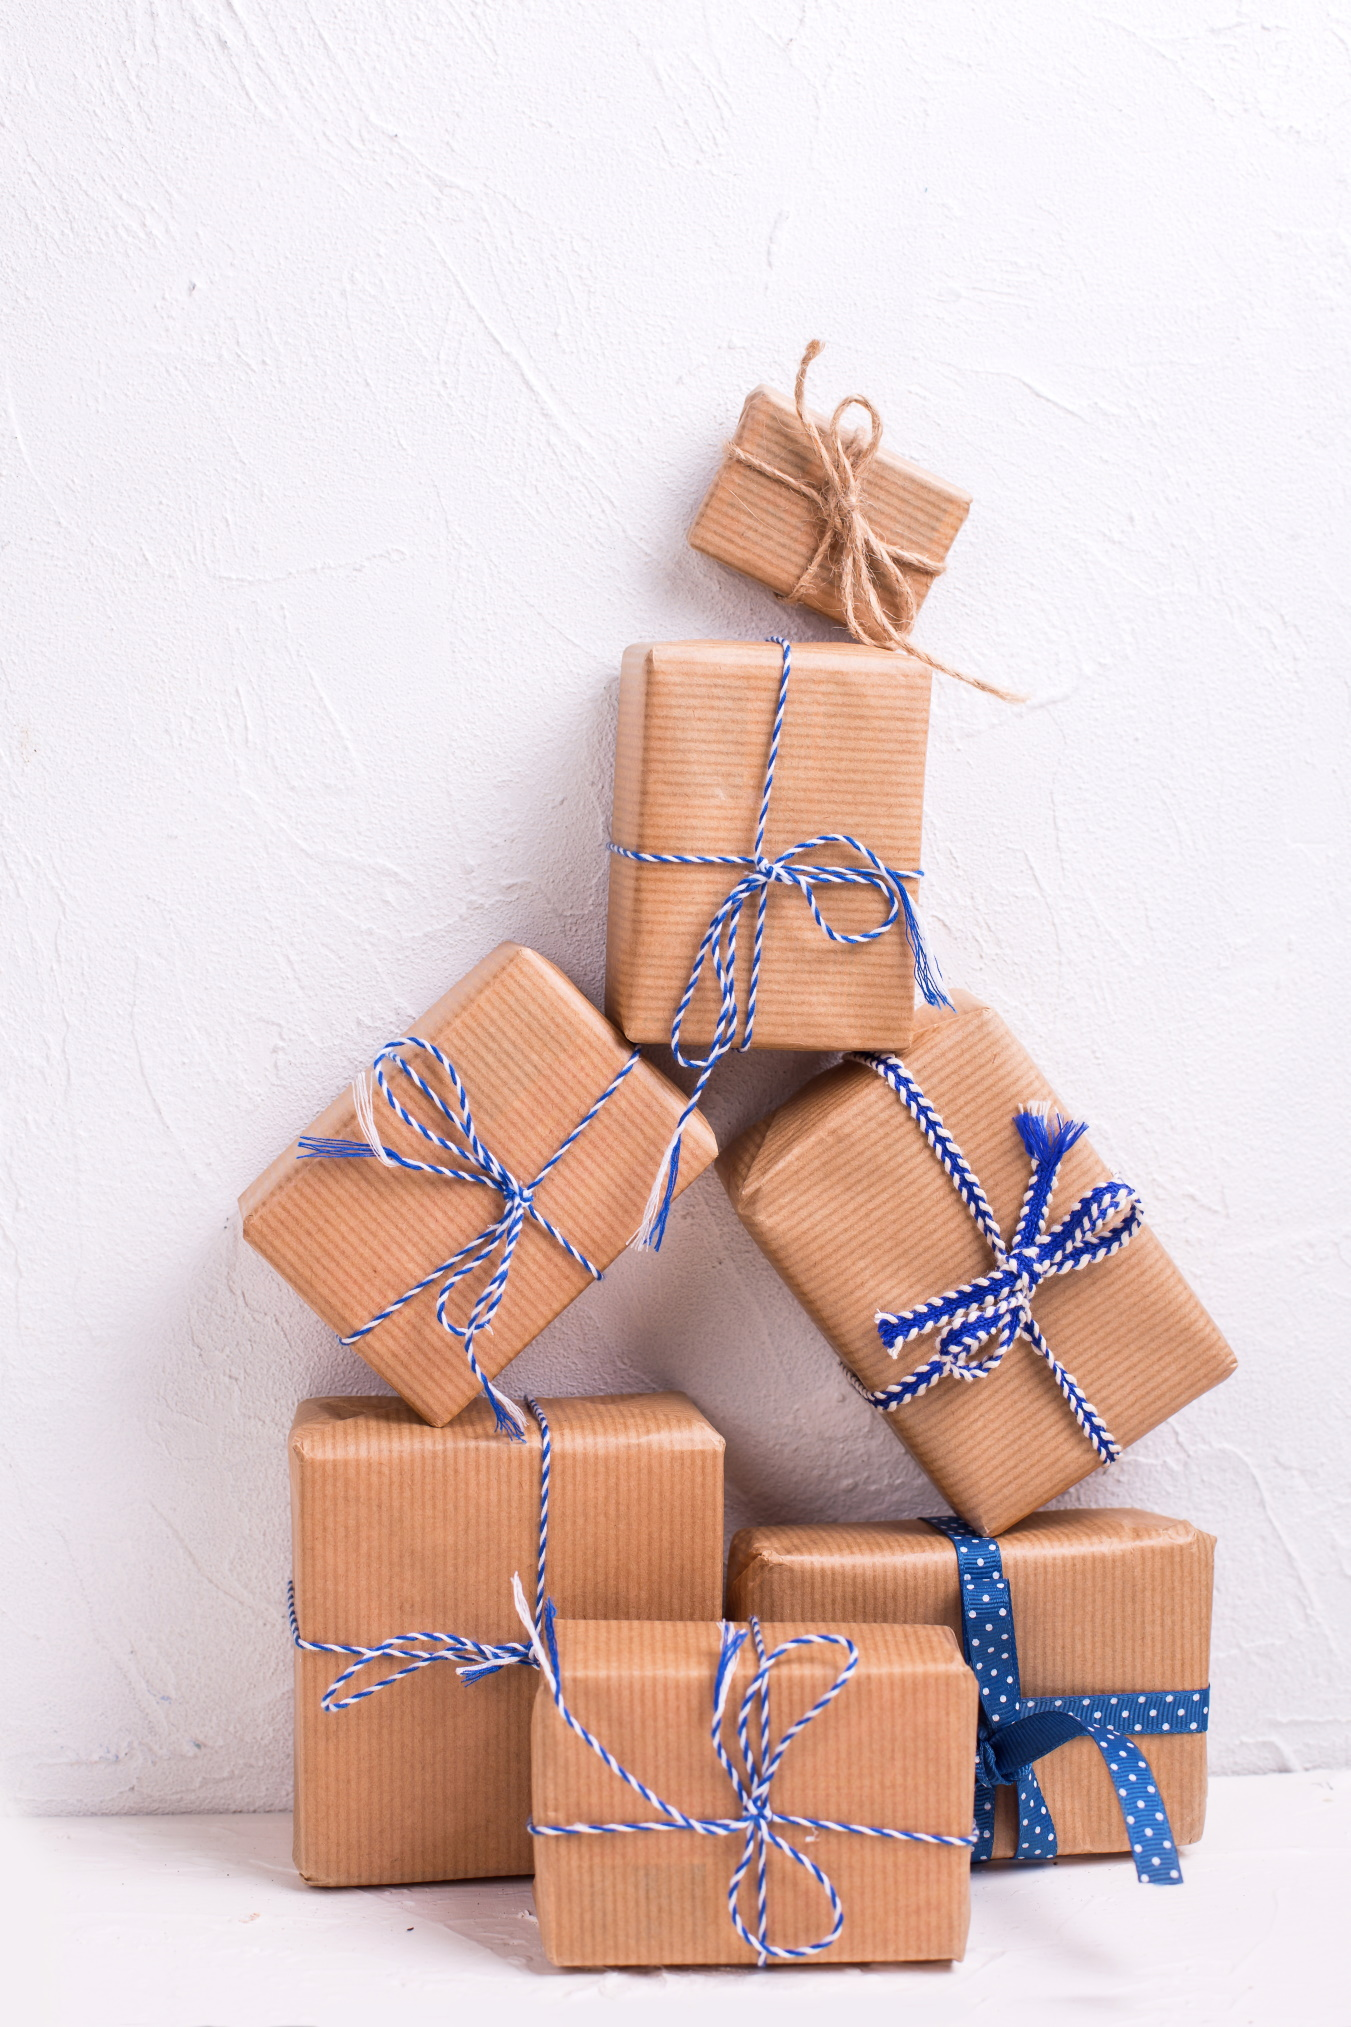 Stack of wrapped boxes with presents  on white textured background. Selective focus.  Winter holiday, Christmas, New Year. Vertical image.